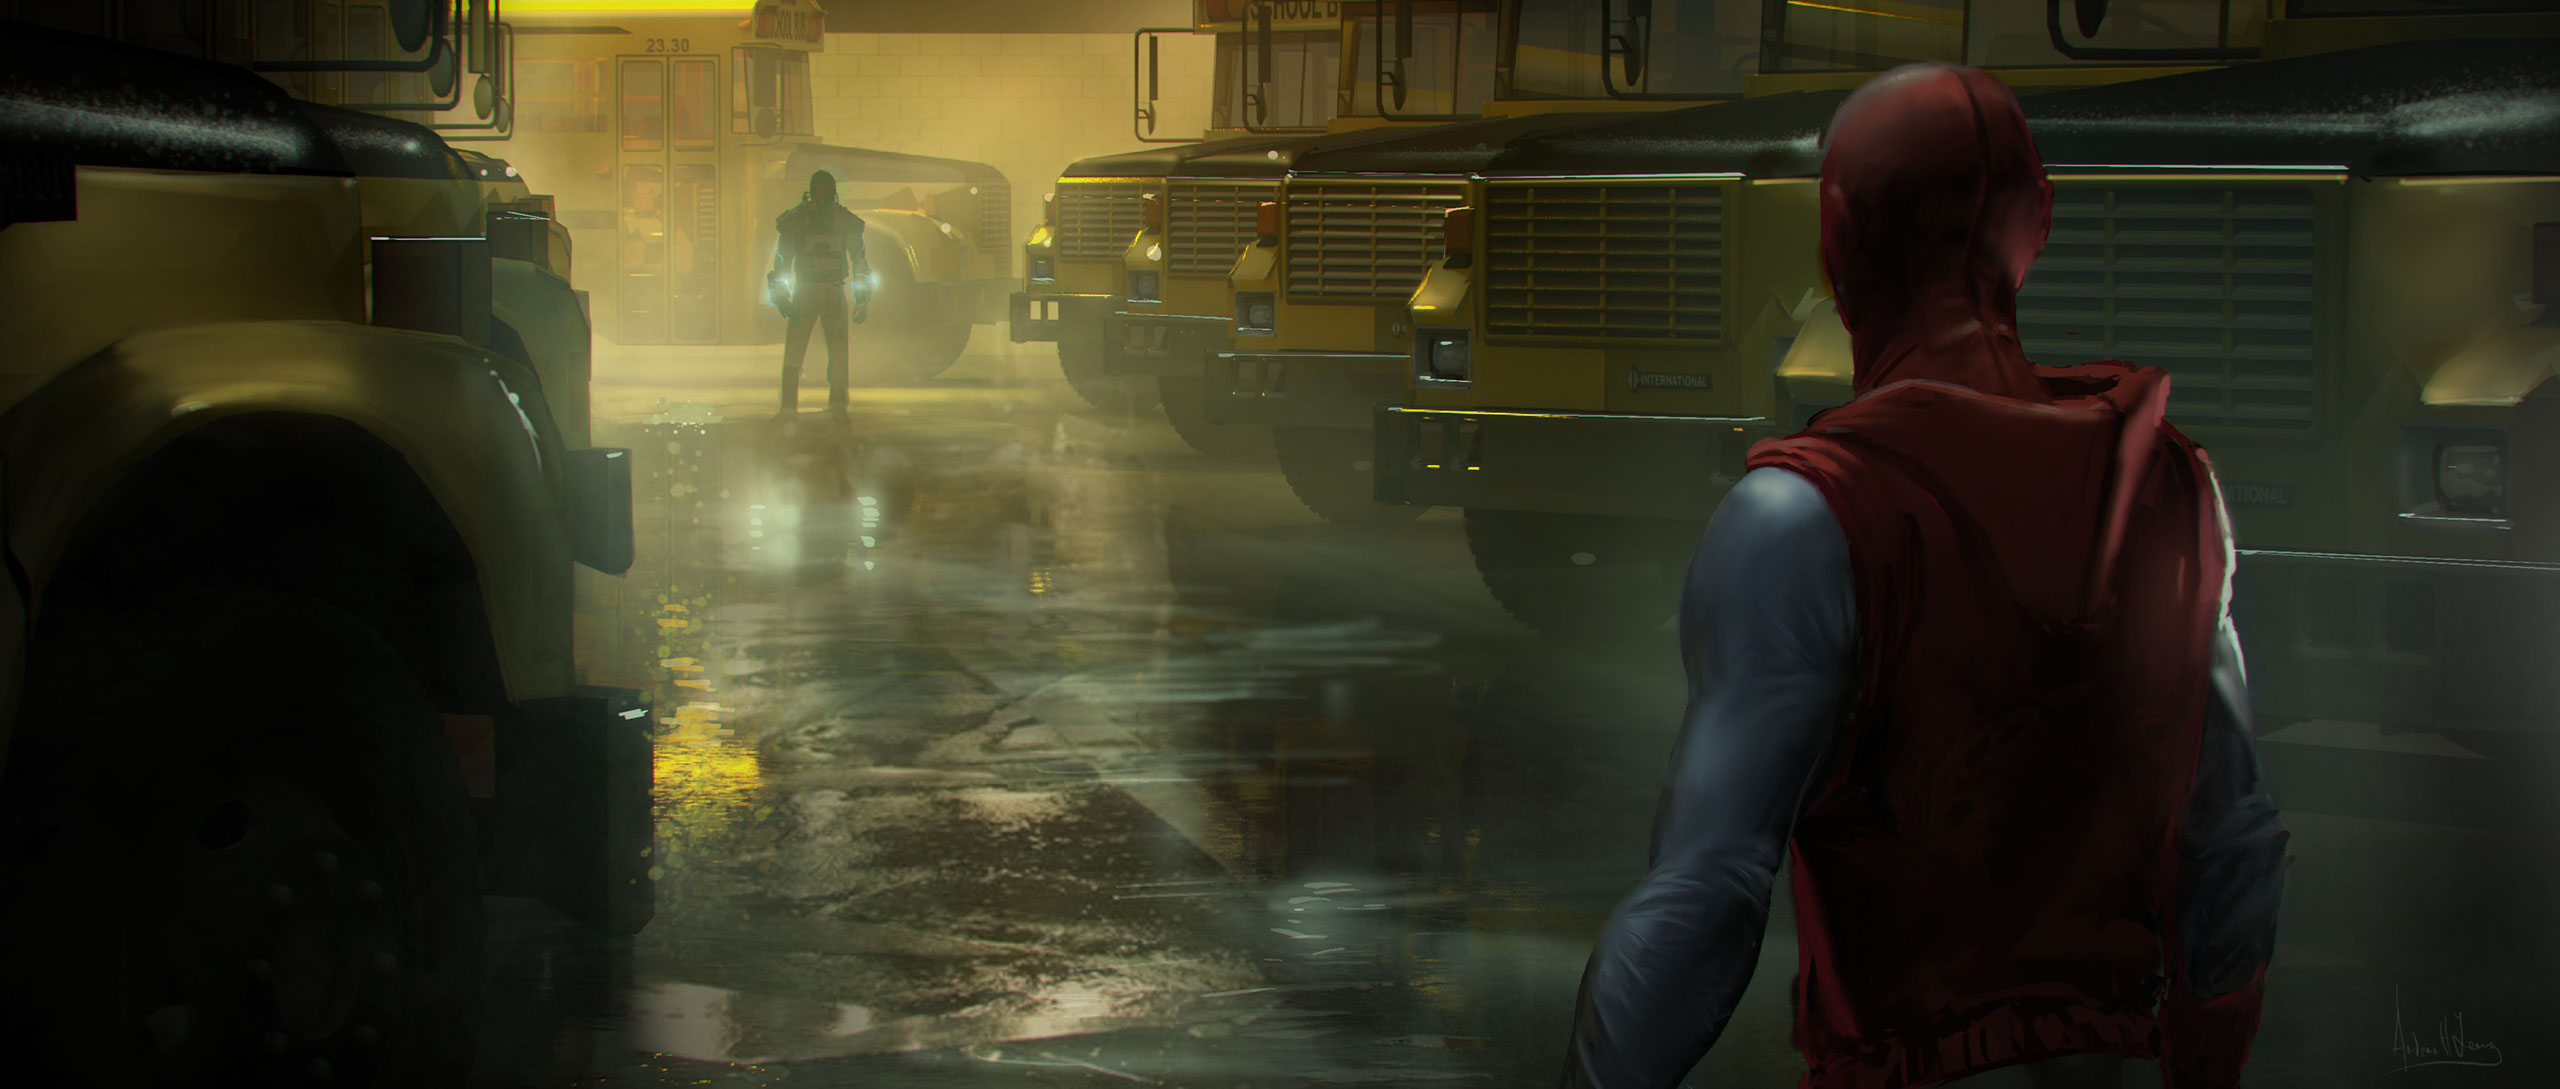 Spider-Man: Homecoming Concept Art by Andrew Leung